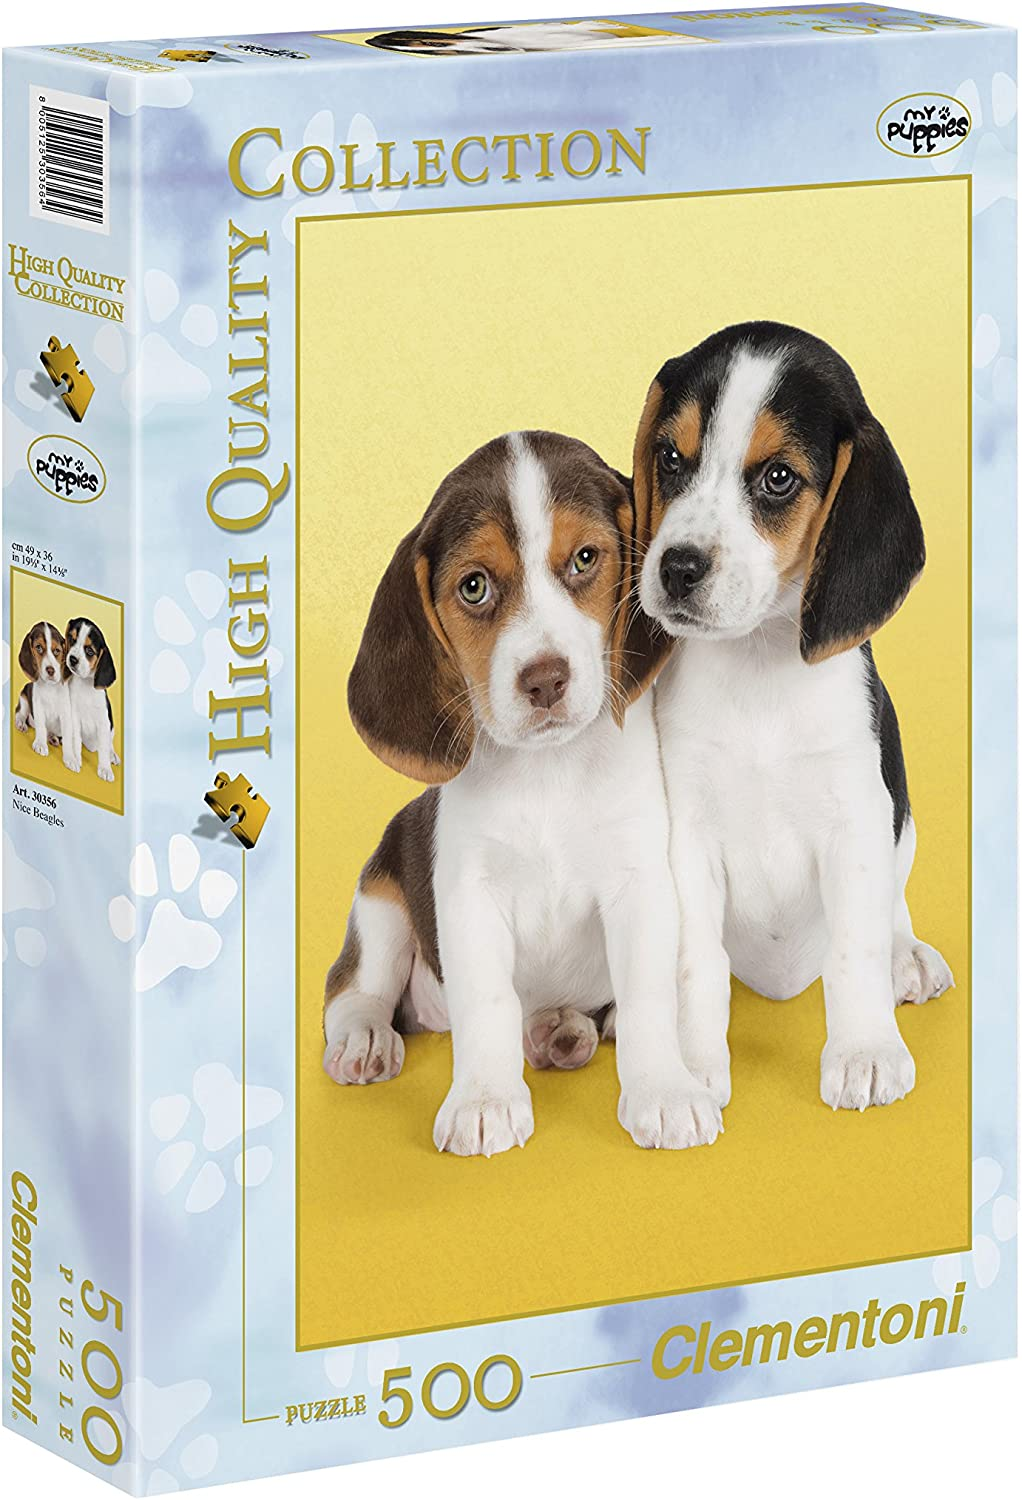 Clementoni 500Piece Puzzle, Beagle Puppies